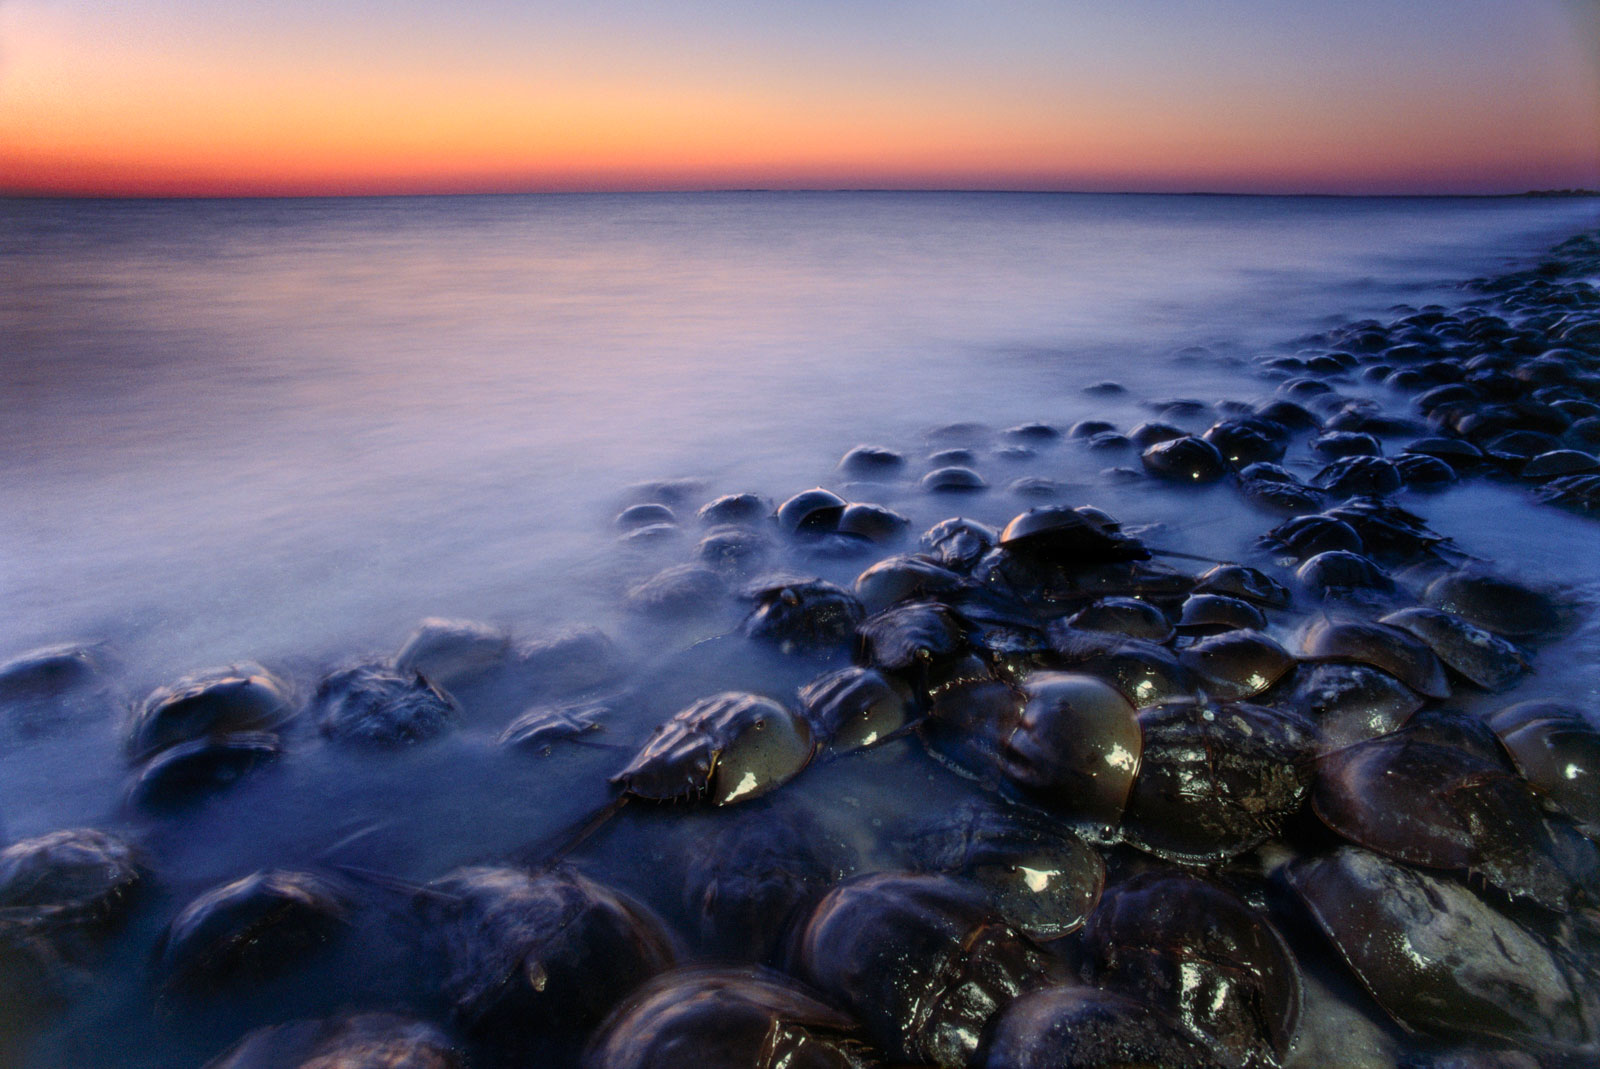 Horseshoe crabs spawning at dusk, Delaware Bay, New Jersey, USA